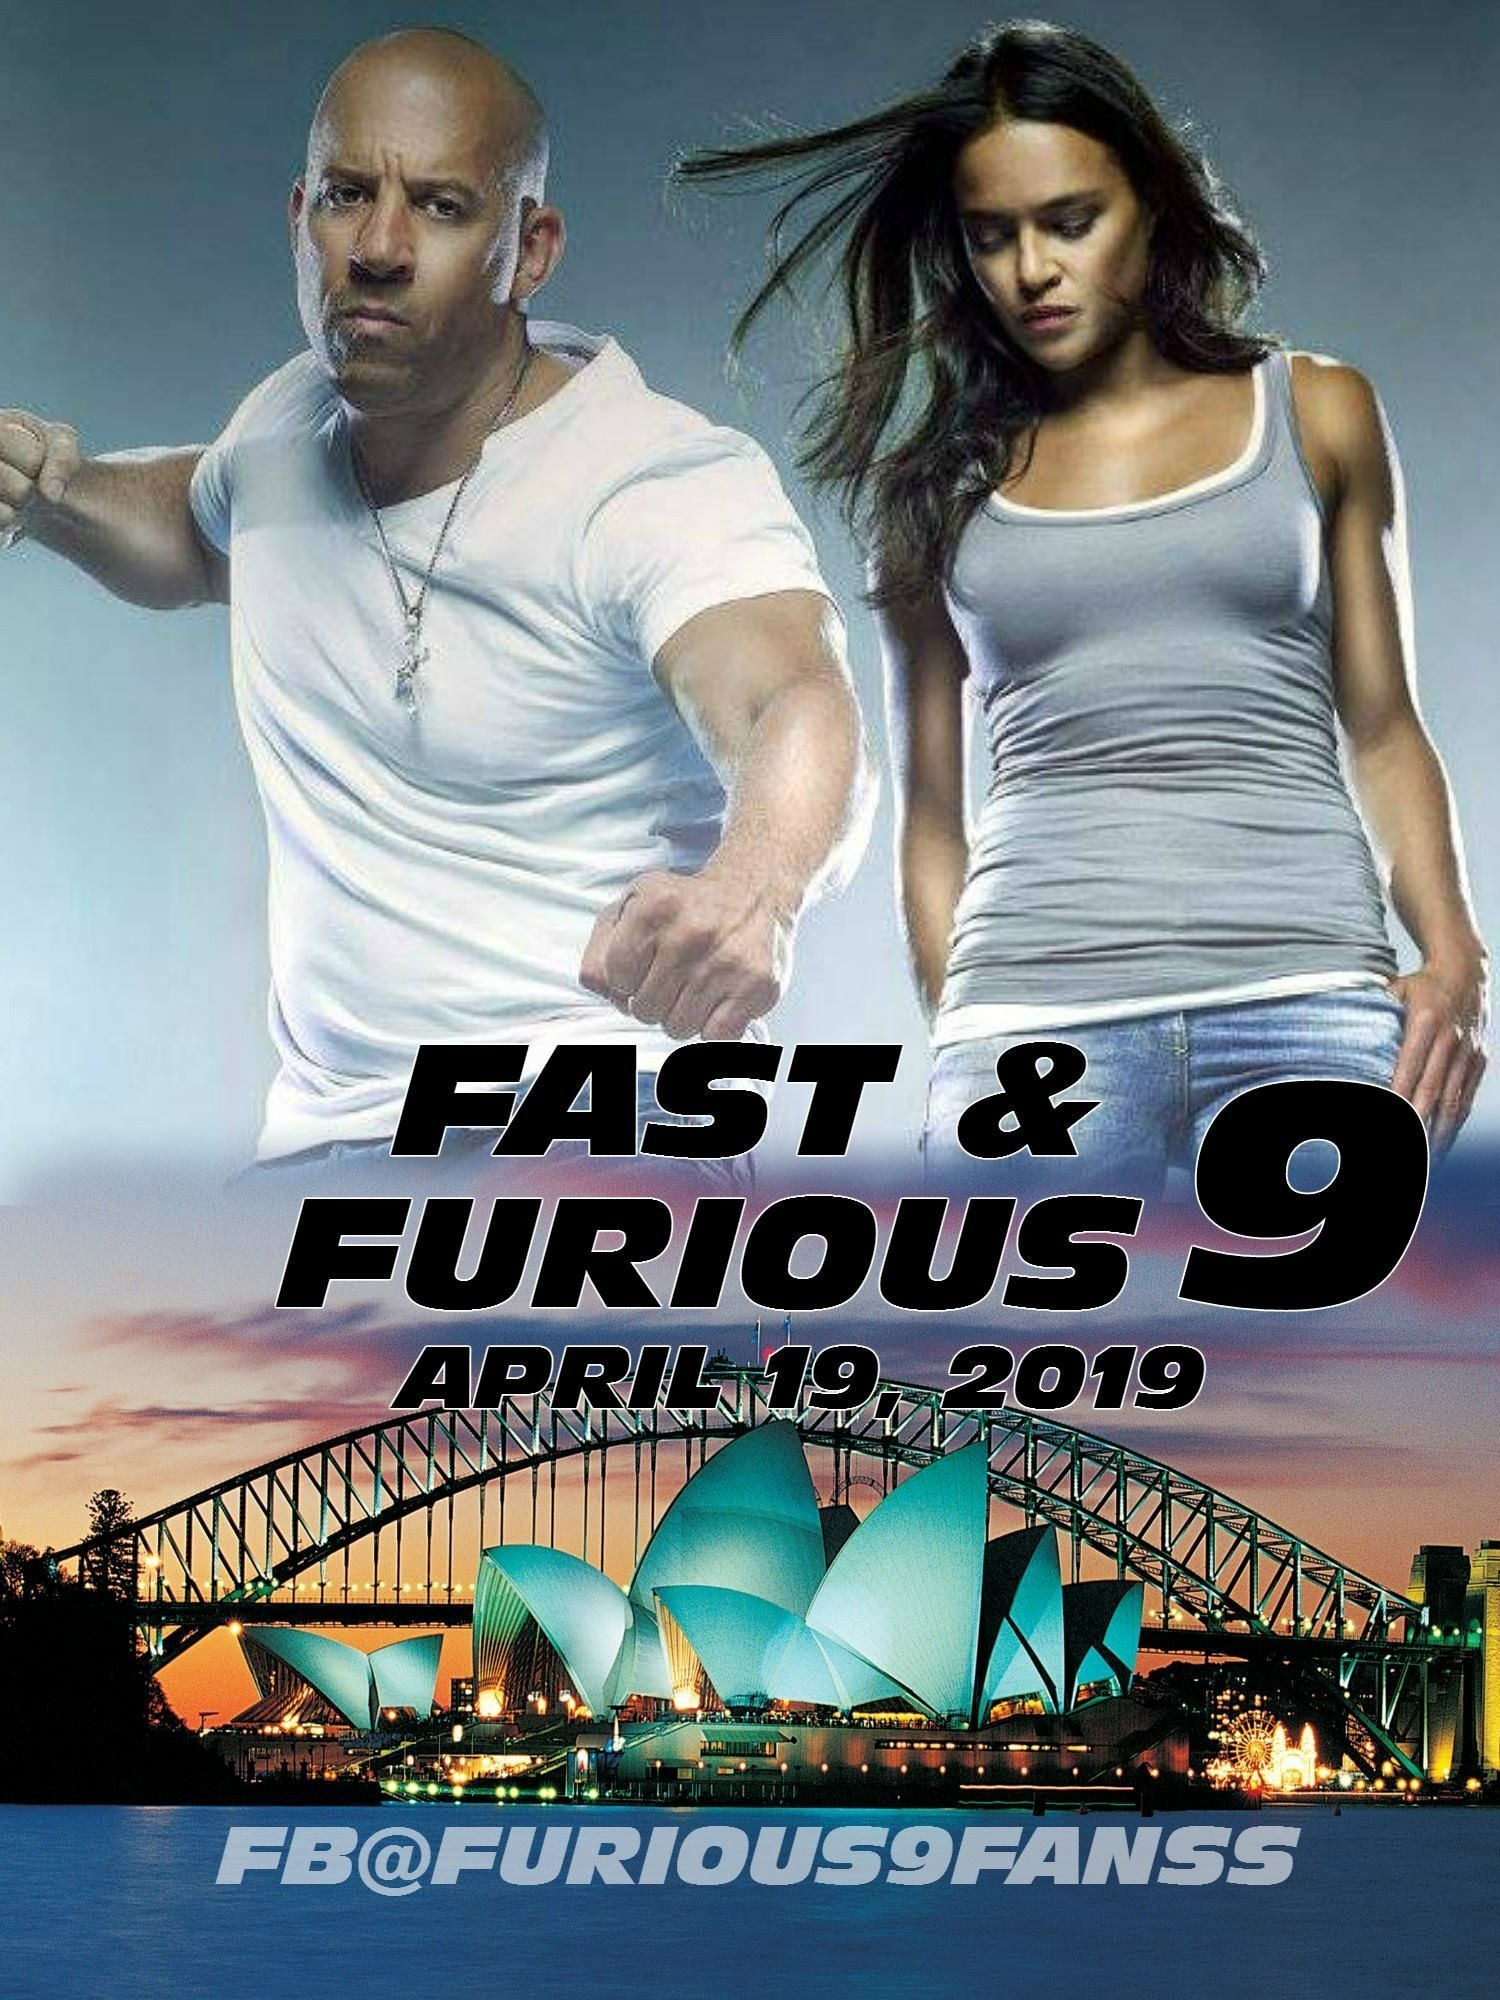 Telecharger Fast And Furious 9 : telecharger, furious, Watch, (2021), English, Subtitle, Download, Movies, Online,, Online, Free,